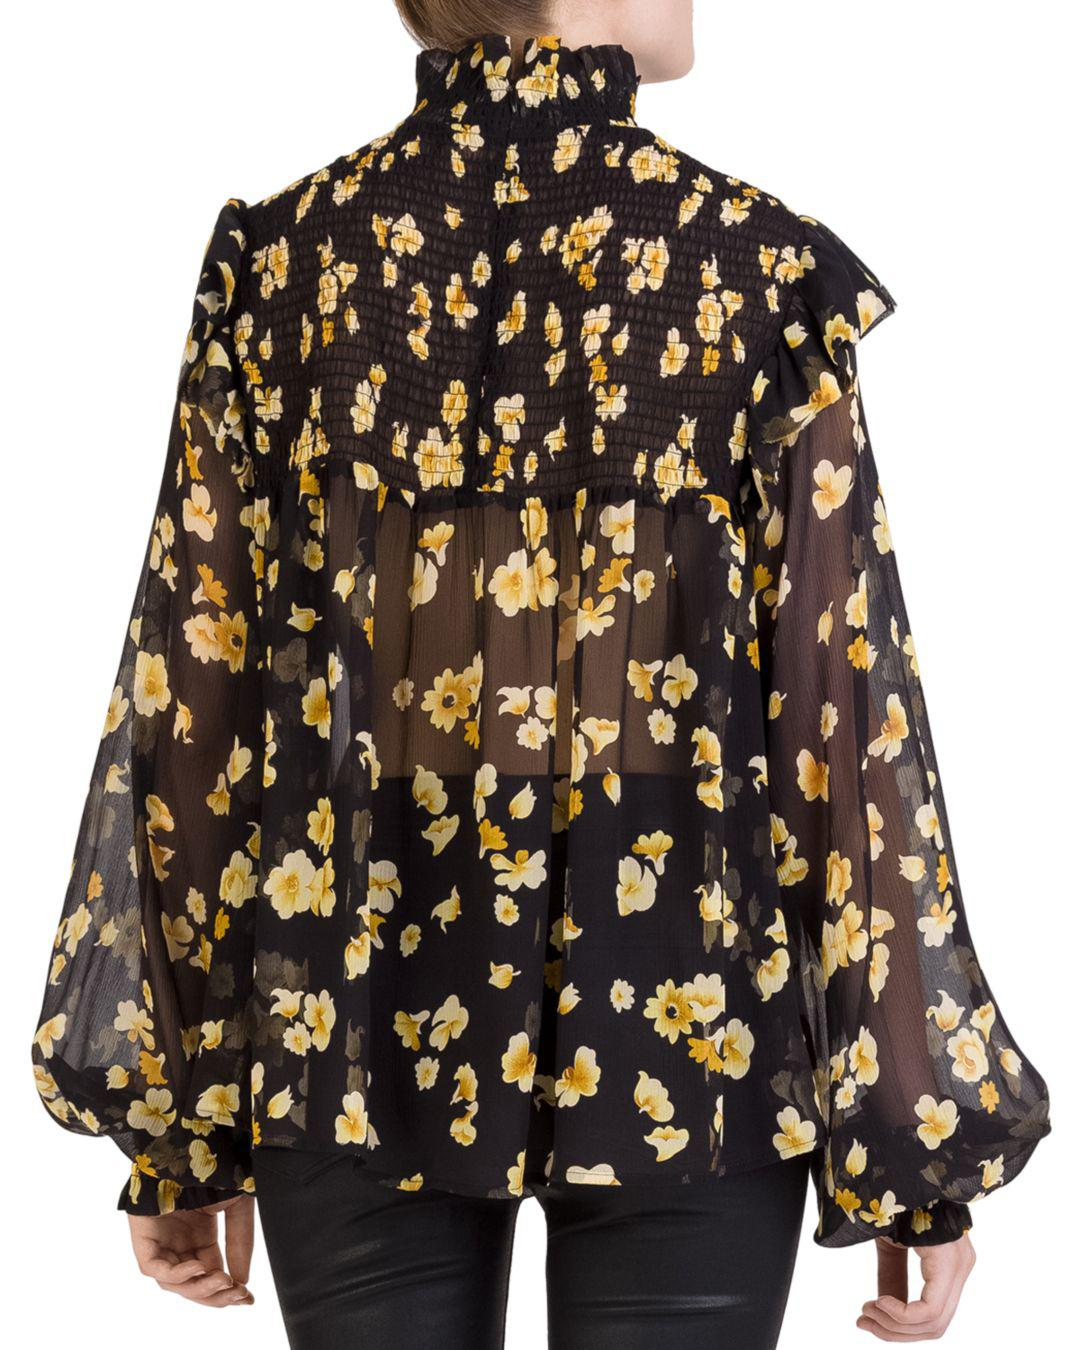 2881533f2a91fc Lyst - The Kooples Silk Smocked Floral-print Top in Yellow